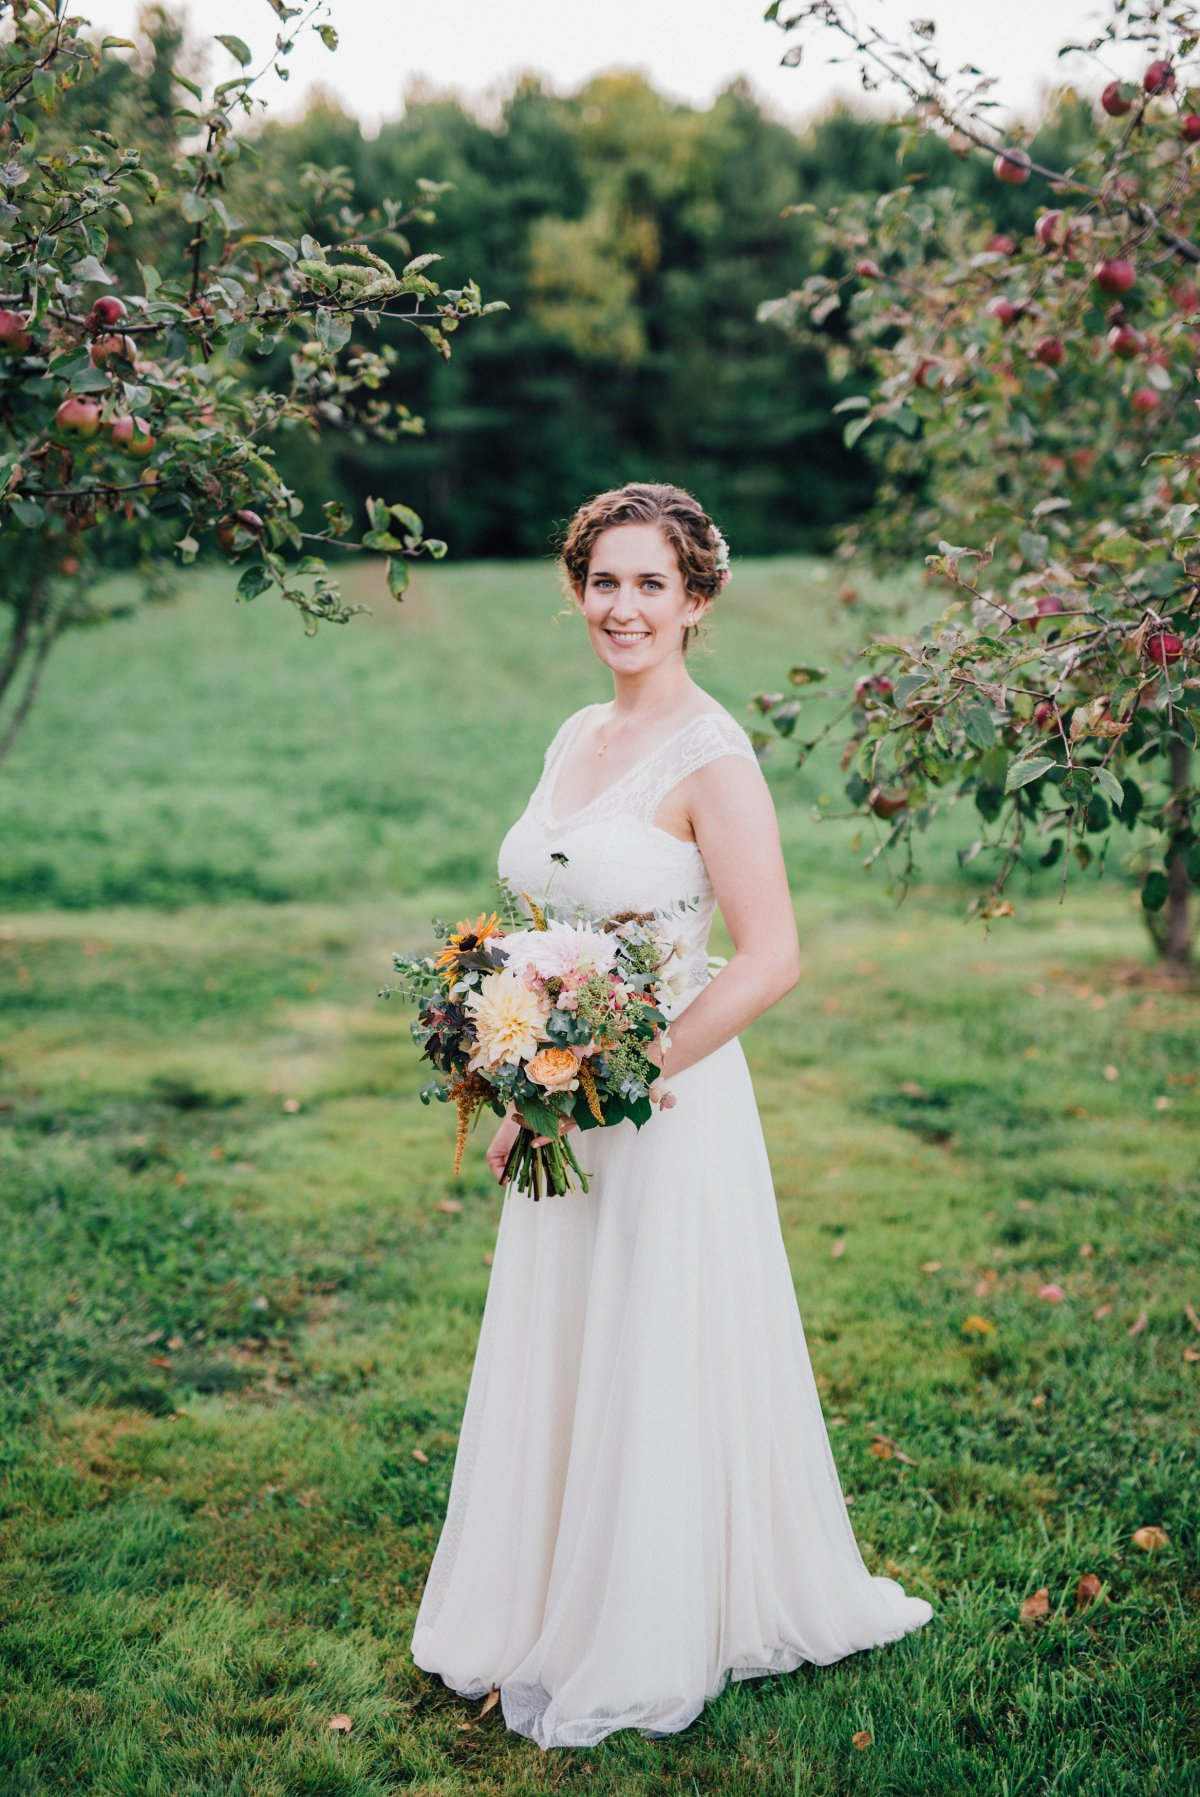 Flanagan Farm Wedding - Bridal Portrait